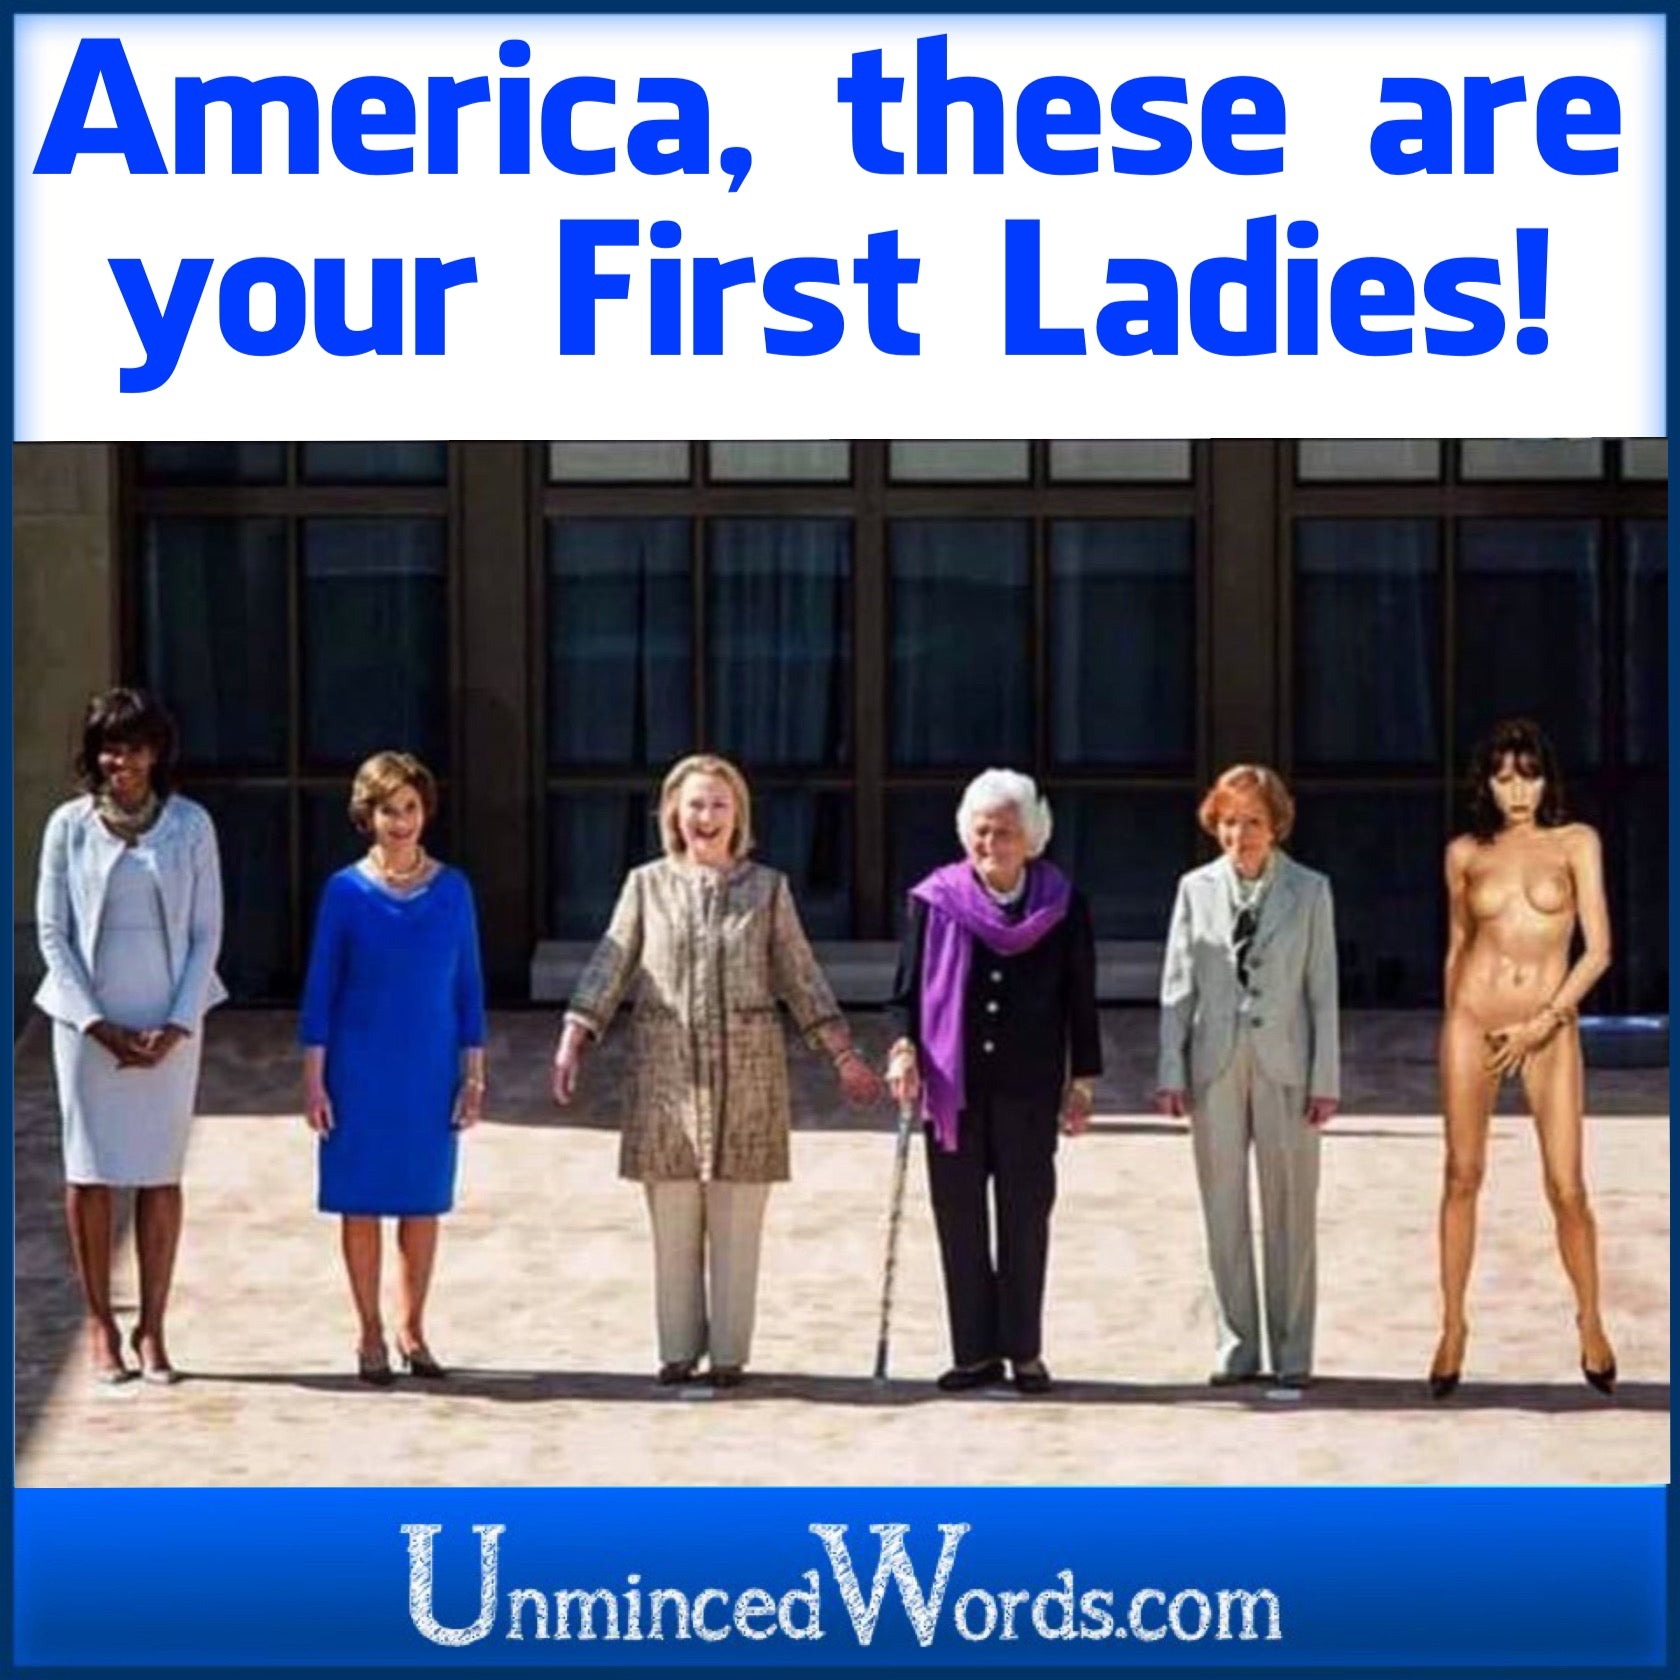 America, these are your First Ladies!